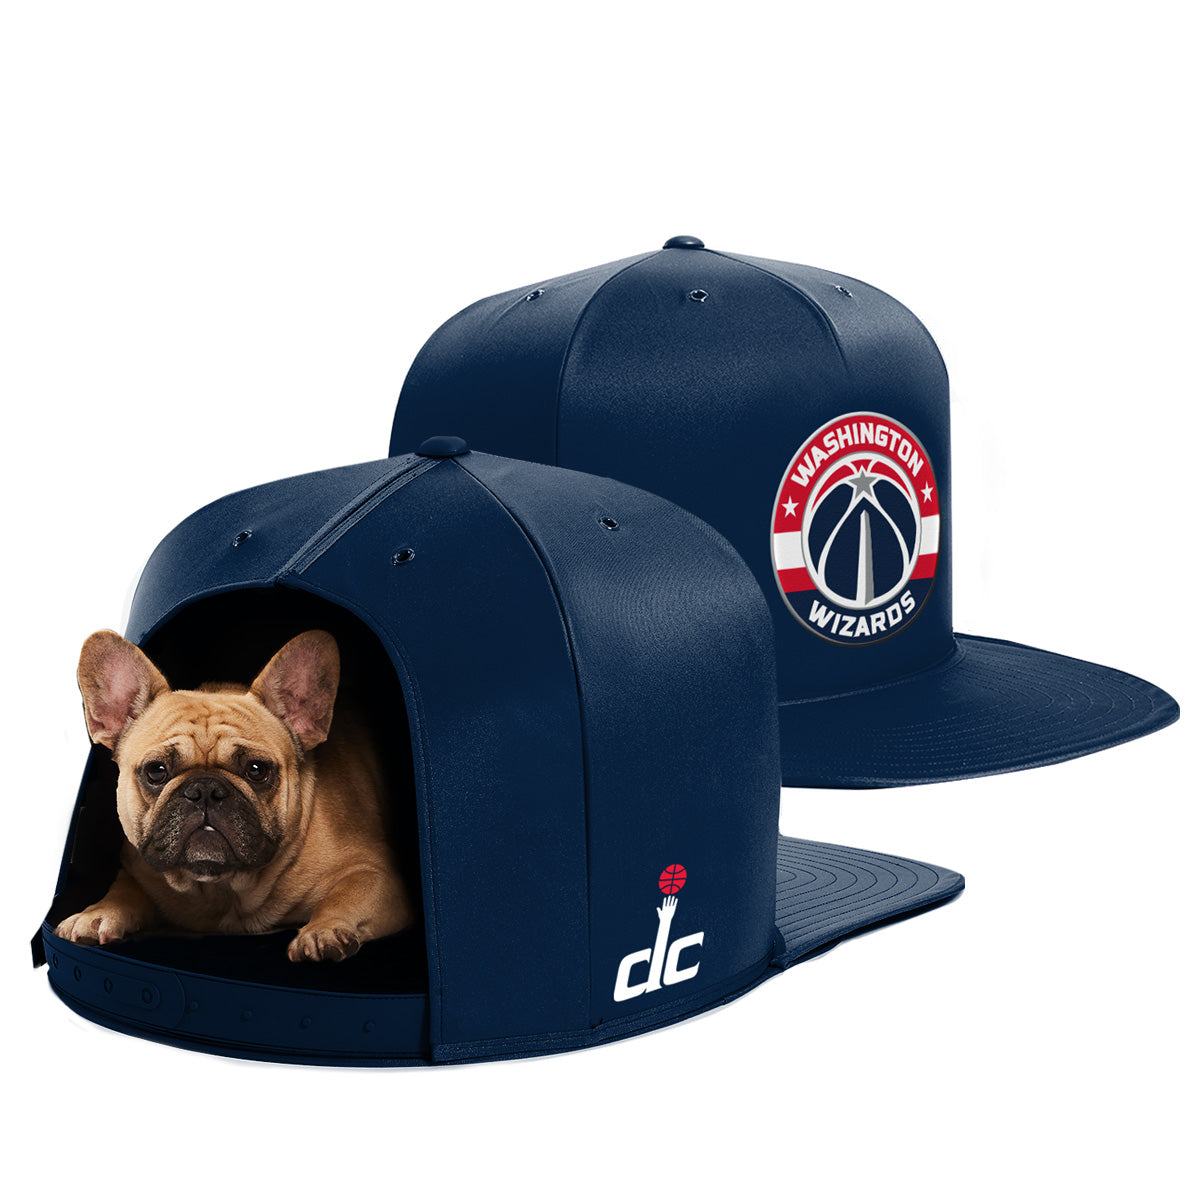 Nap Cap - NBA - Washington Wizards - Pet Bed